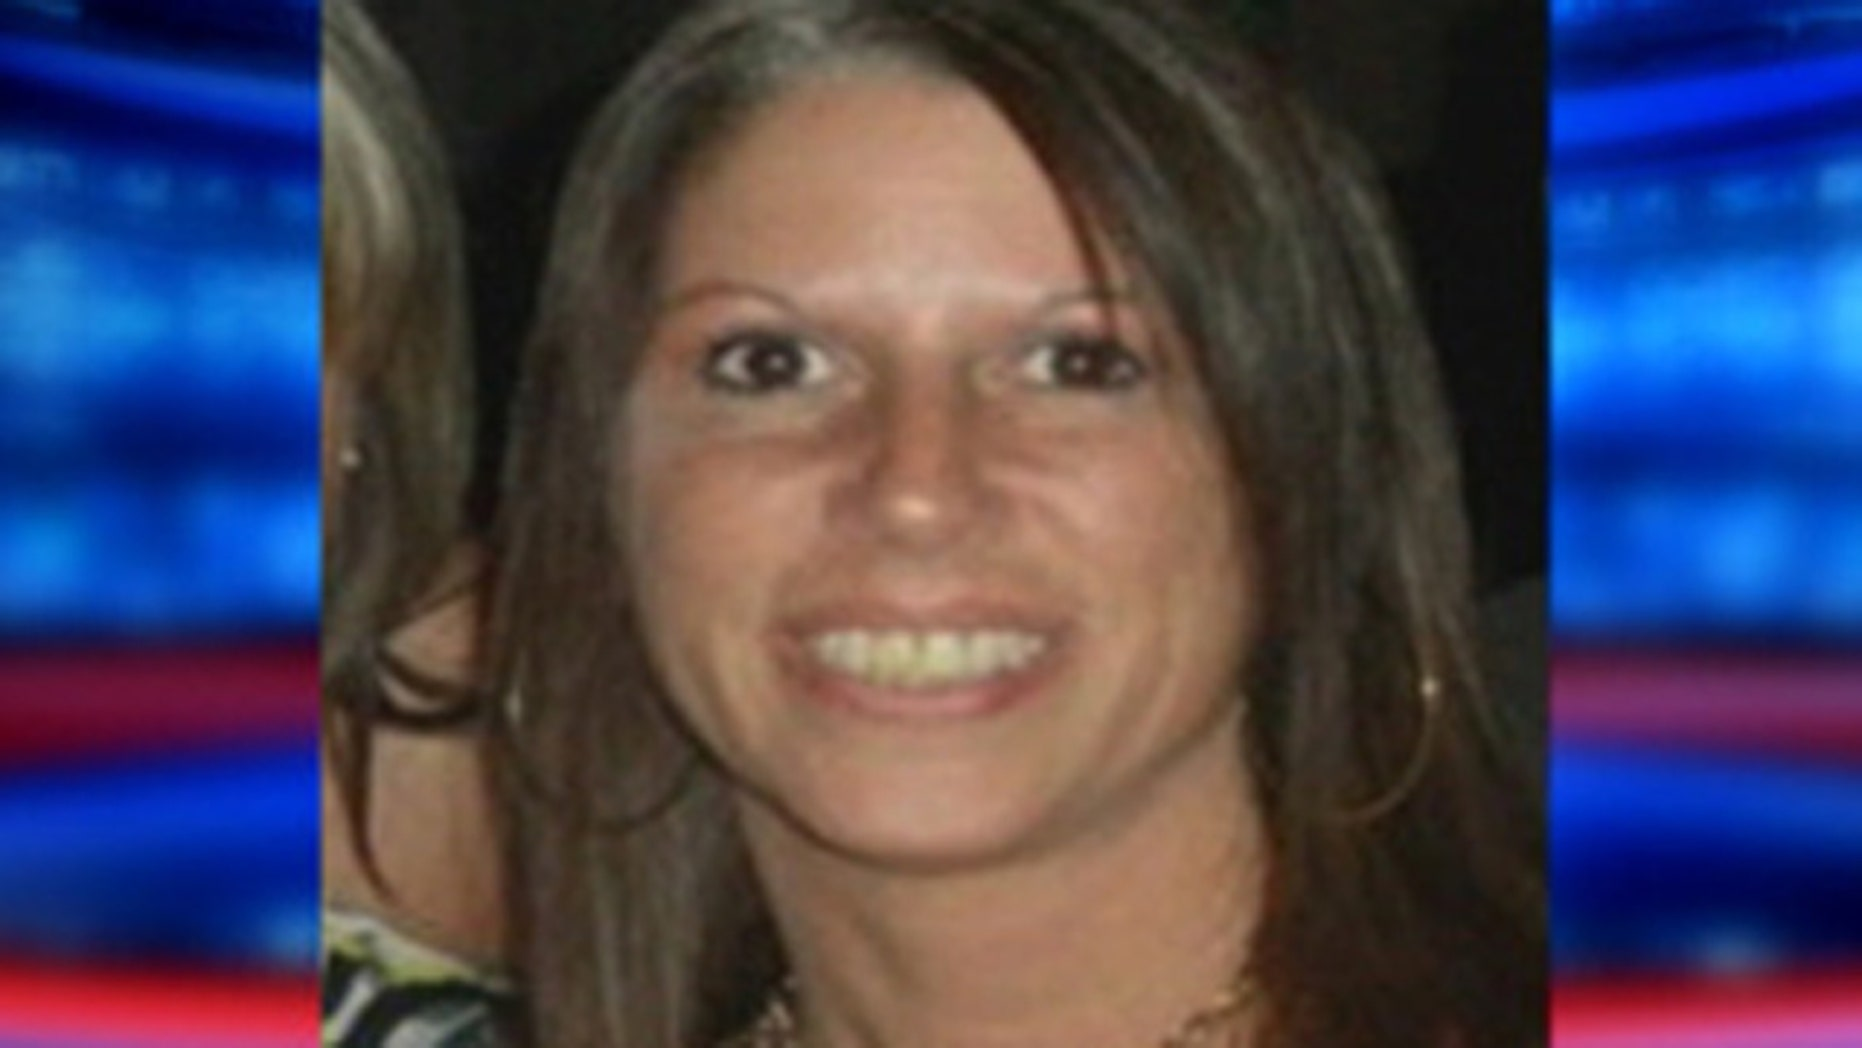 Dawn Fital, 45, a championship pool player who lived in southeastern Michigan, is missing and authorities have not ruled out homicide.